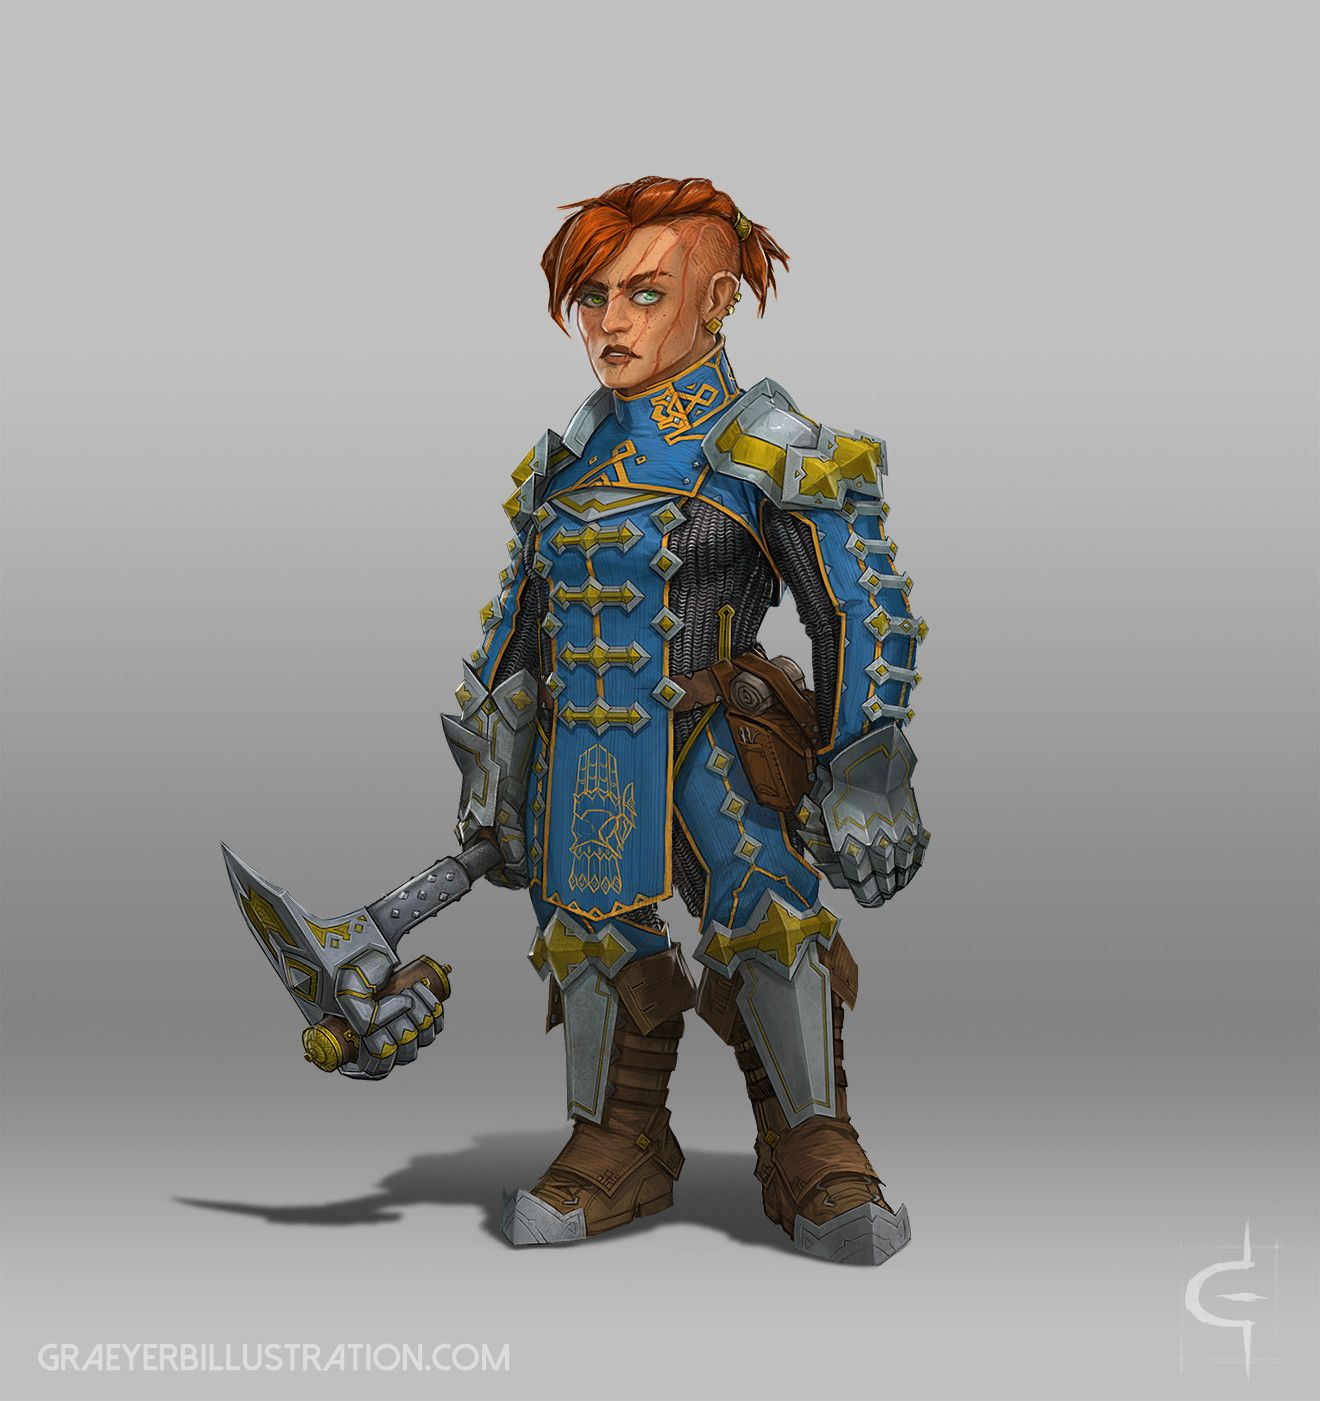 Female Gnome: More Stuff For Our Strahd Game! The Gnome Rogue This Time